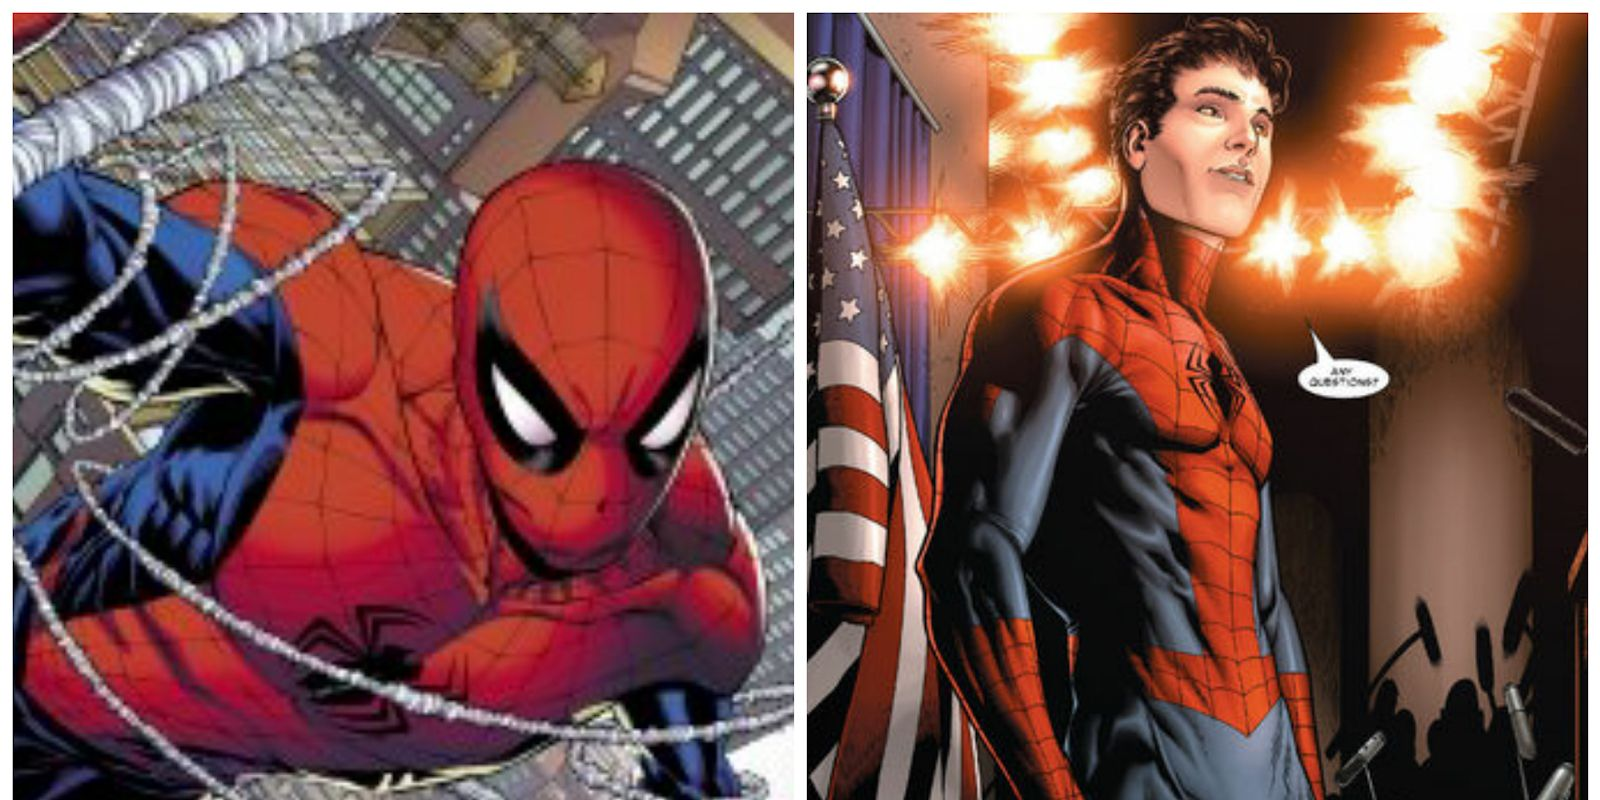 10 Things You Didn't Know About Peter Parker From The Marvel Comics